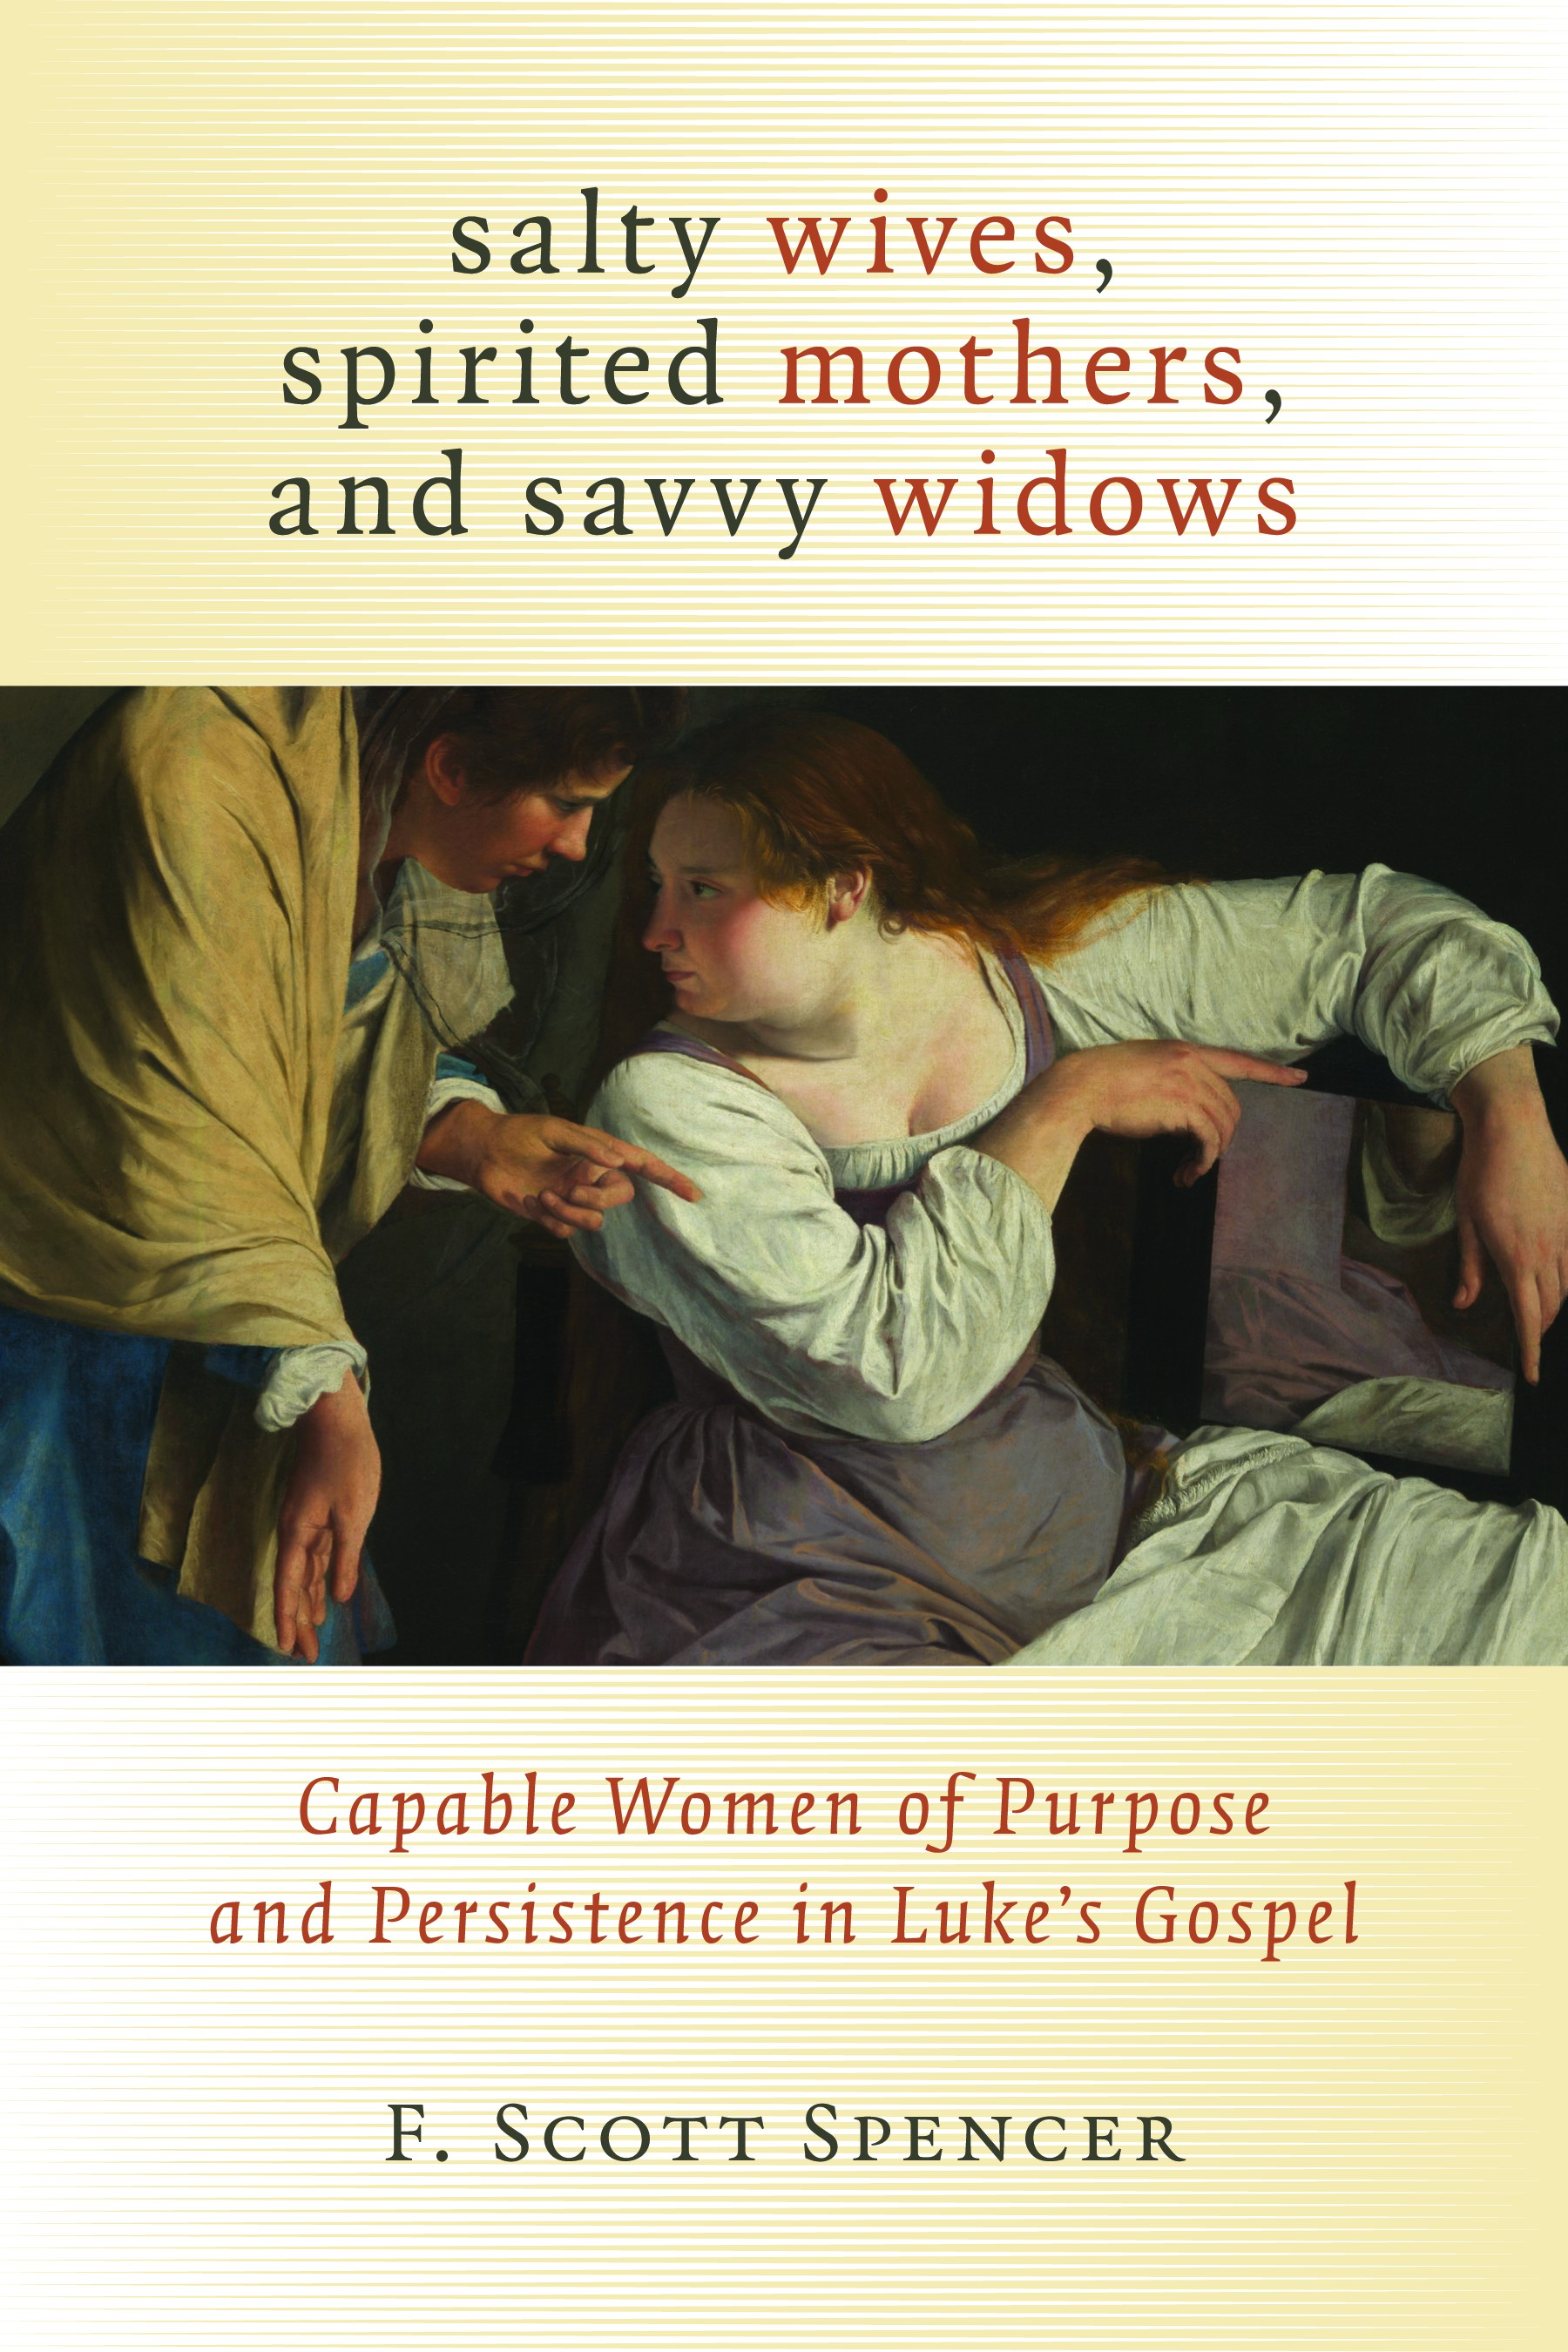 Salty Wives, Spirited Mothers, and Savvy Widows